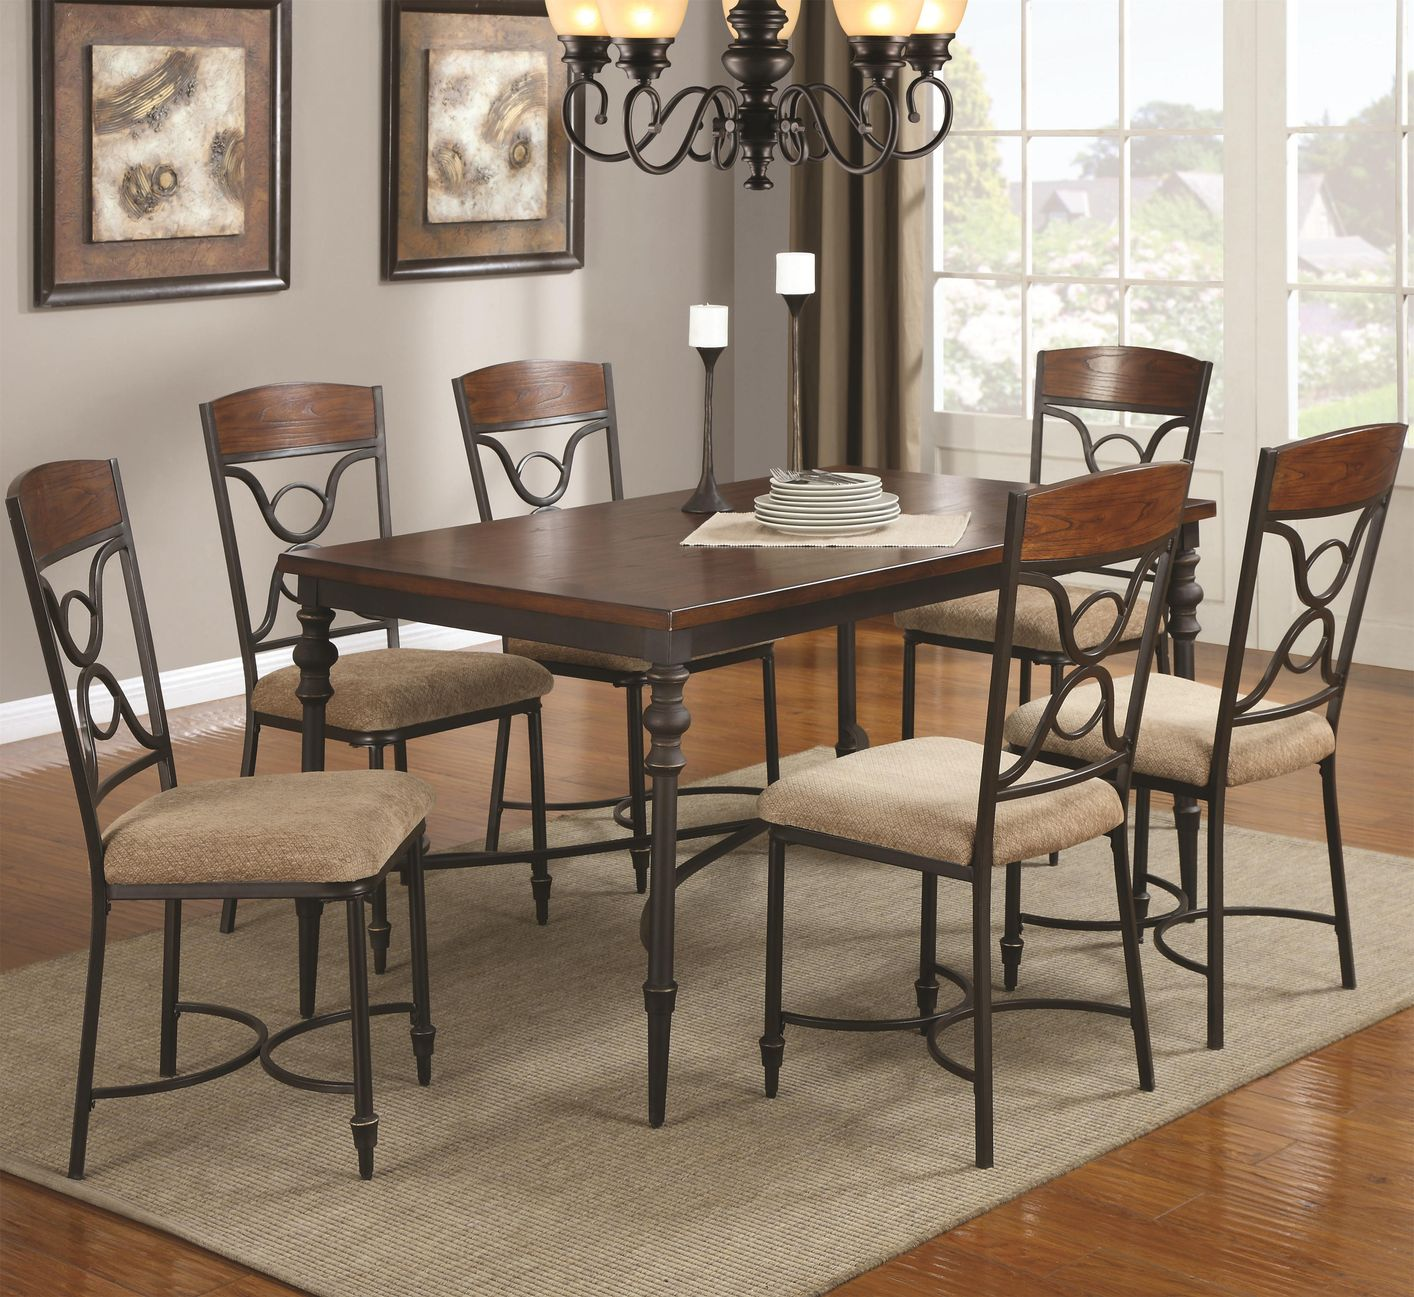 metal and wood dining set. klaus cherry metal and wood dining table set c